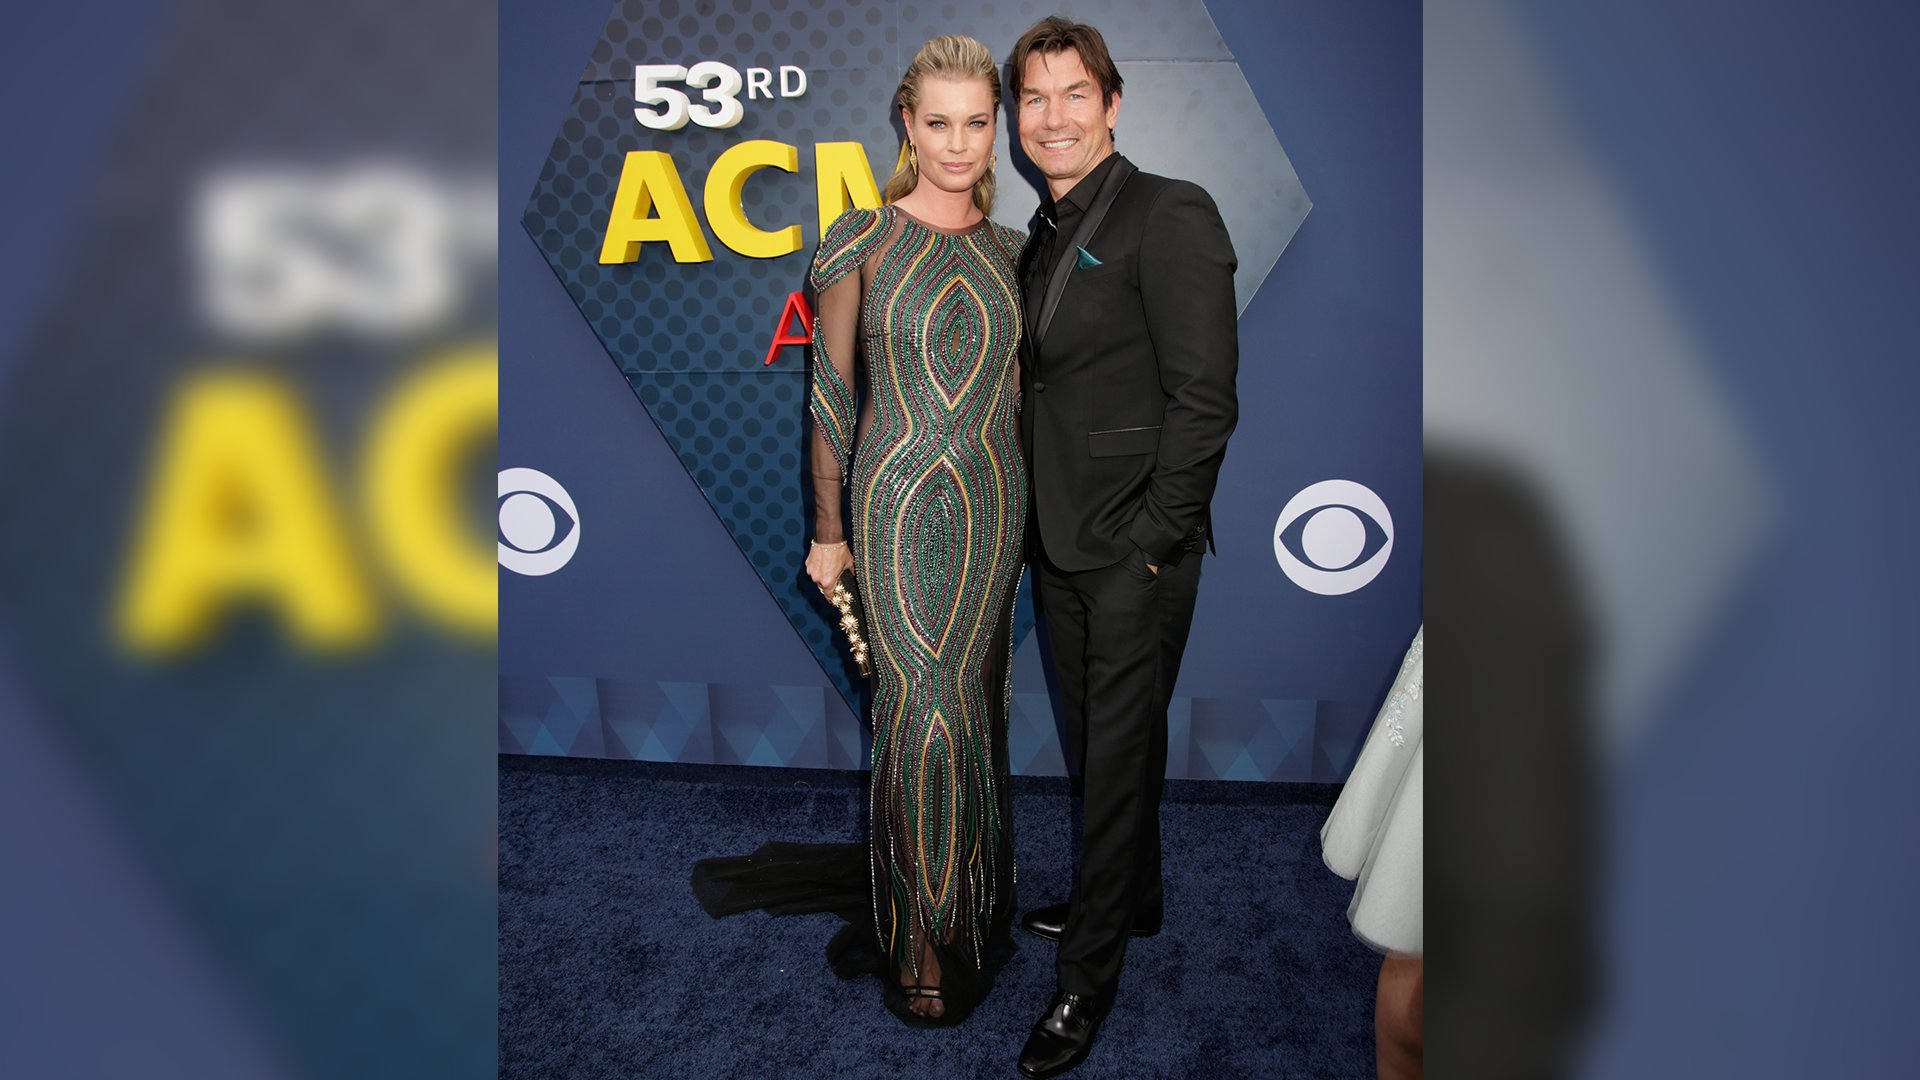 Rebecca Romijn and Jerry O'Connell walk down the ACM red carpet before presenting an award.